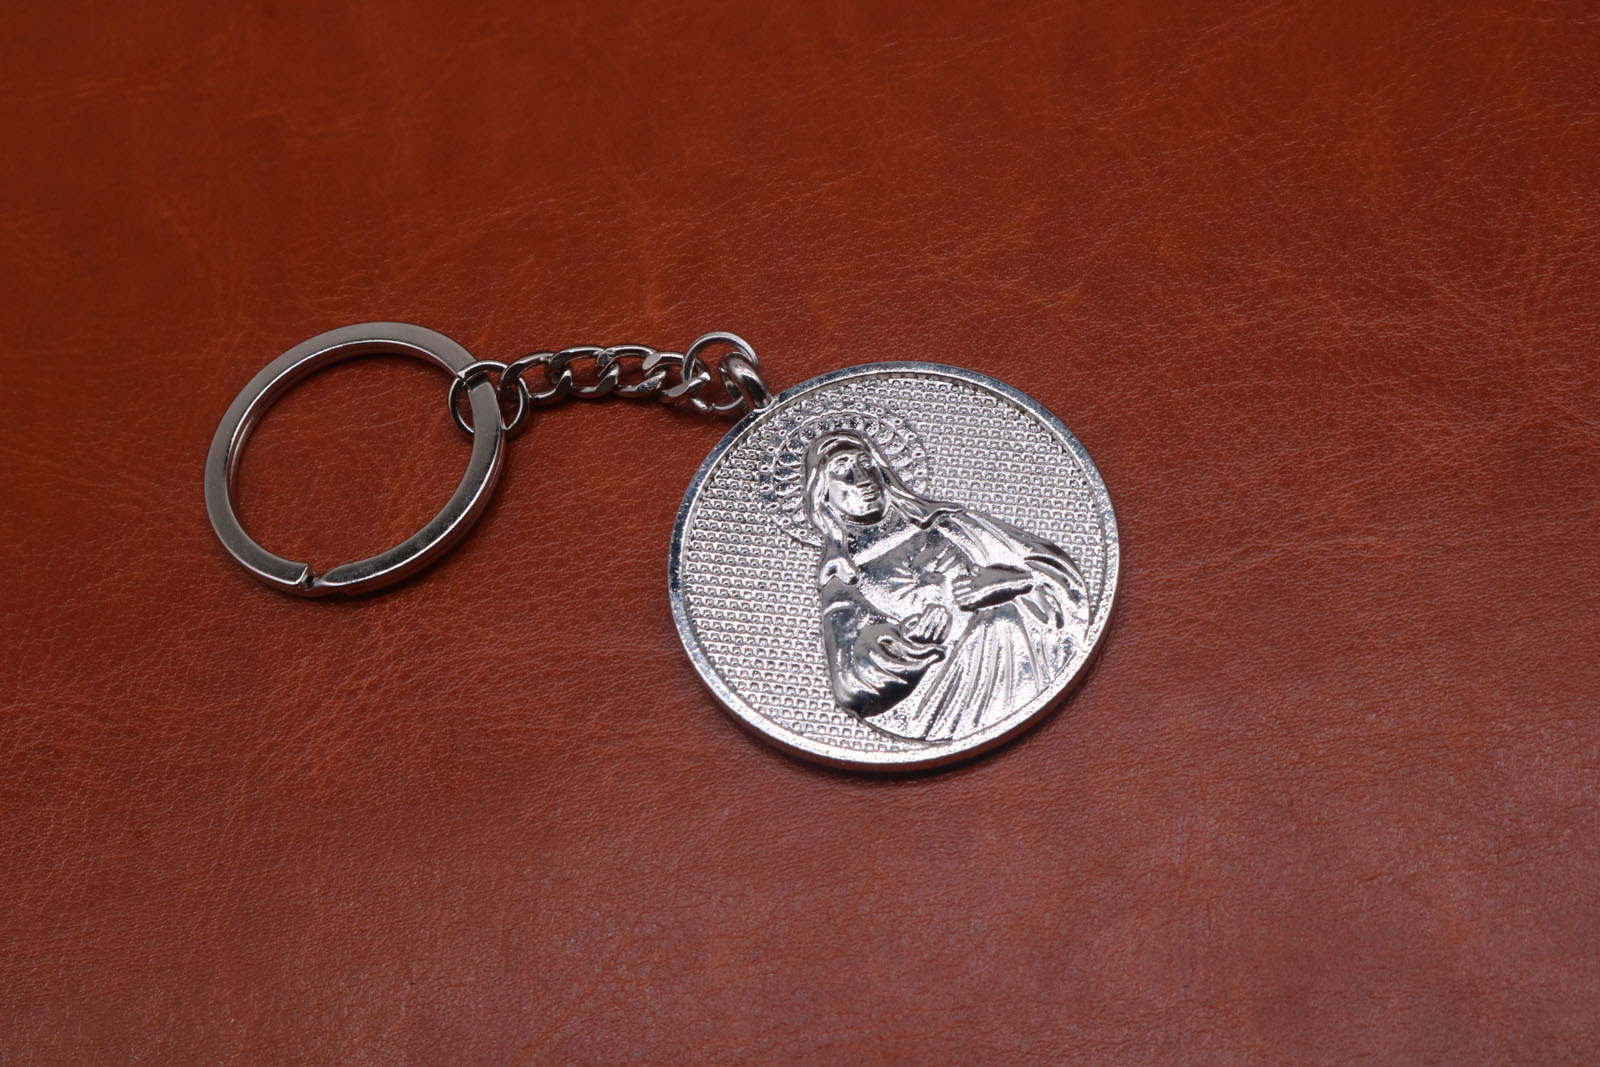 Notre Dame Jesus key chain UNIX Mary Jesus Key Chain Key Chain Handbag gift accessories free shipping